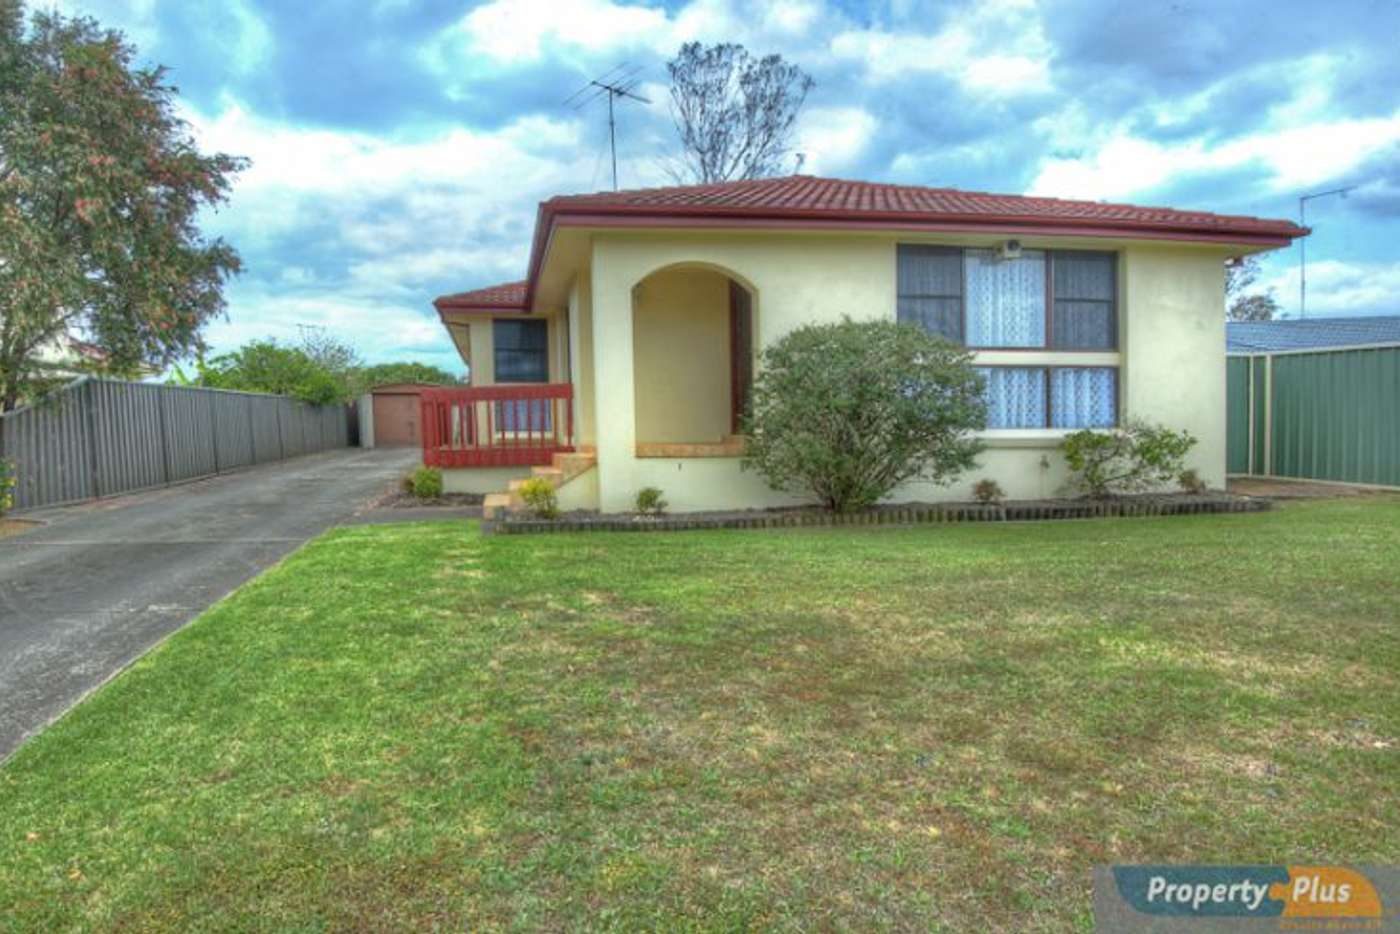 Main view of Homely house listing, 27 St Clair Ave, St Clair NSW 2759